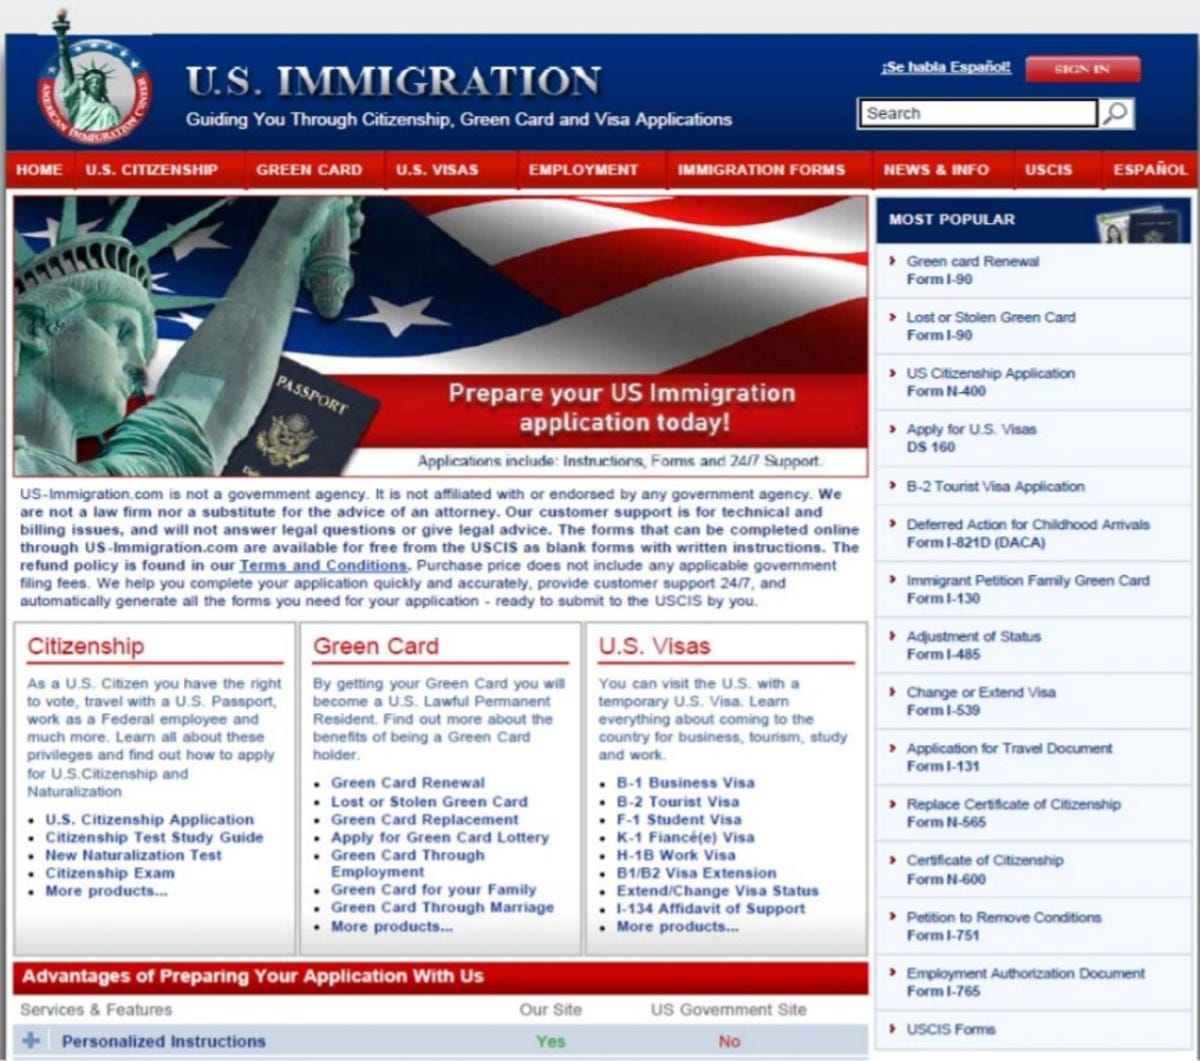 Forms Direct fined $2 2 million in alleged online immigration scam